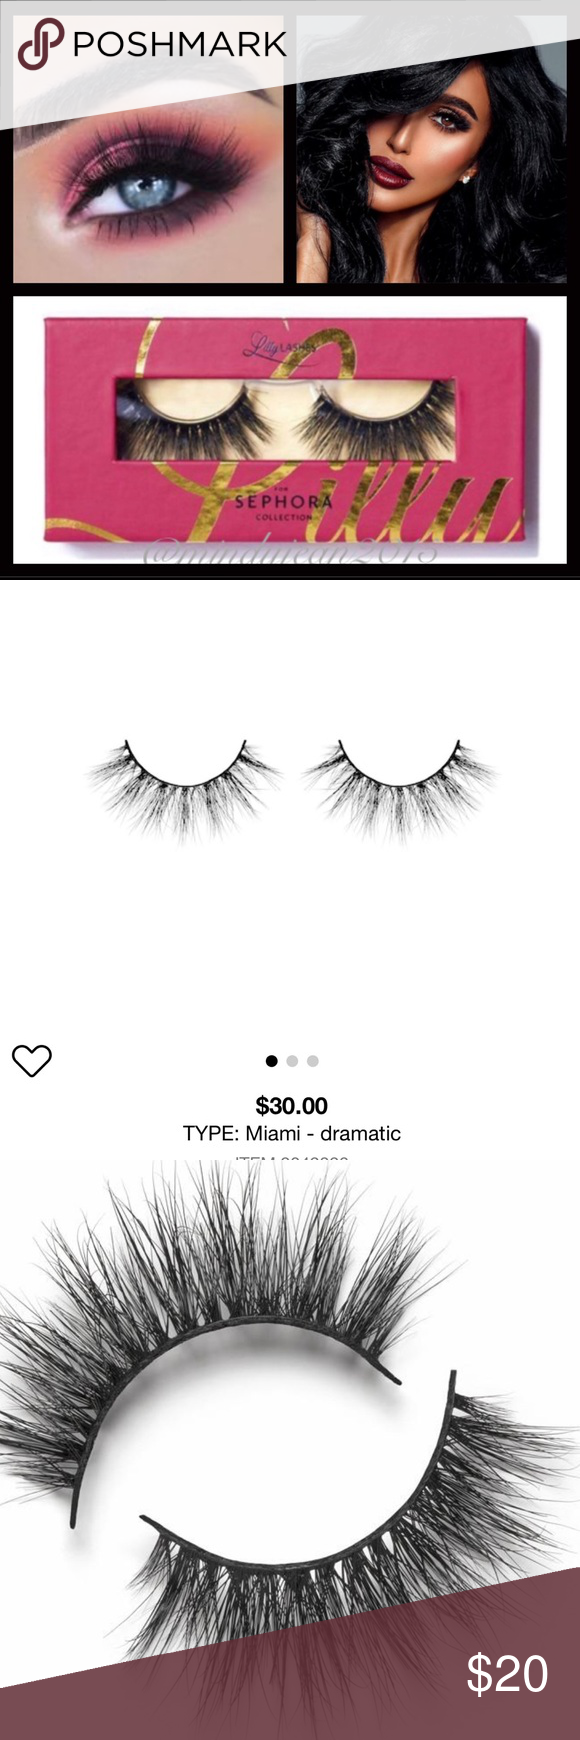 6ded0e307be Lily Lashes in Miami by Sephora New Authentic Pink packaging sealed A  collaboration with Lilly Lashes—a collection four styles of her  cruelty-free 3D mink ...